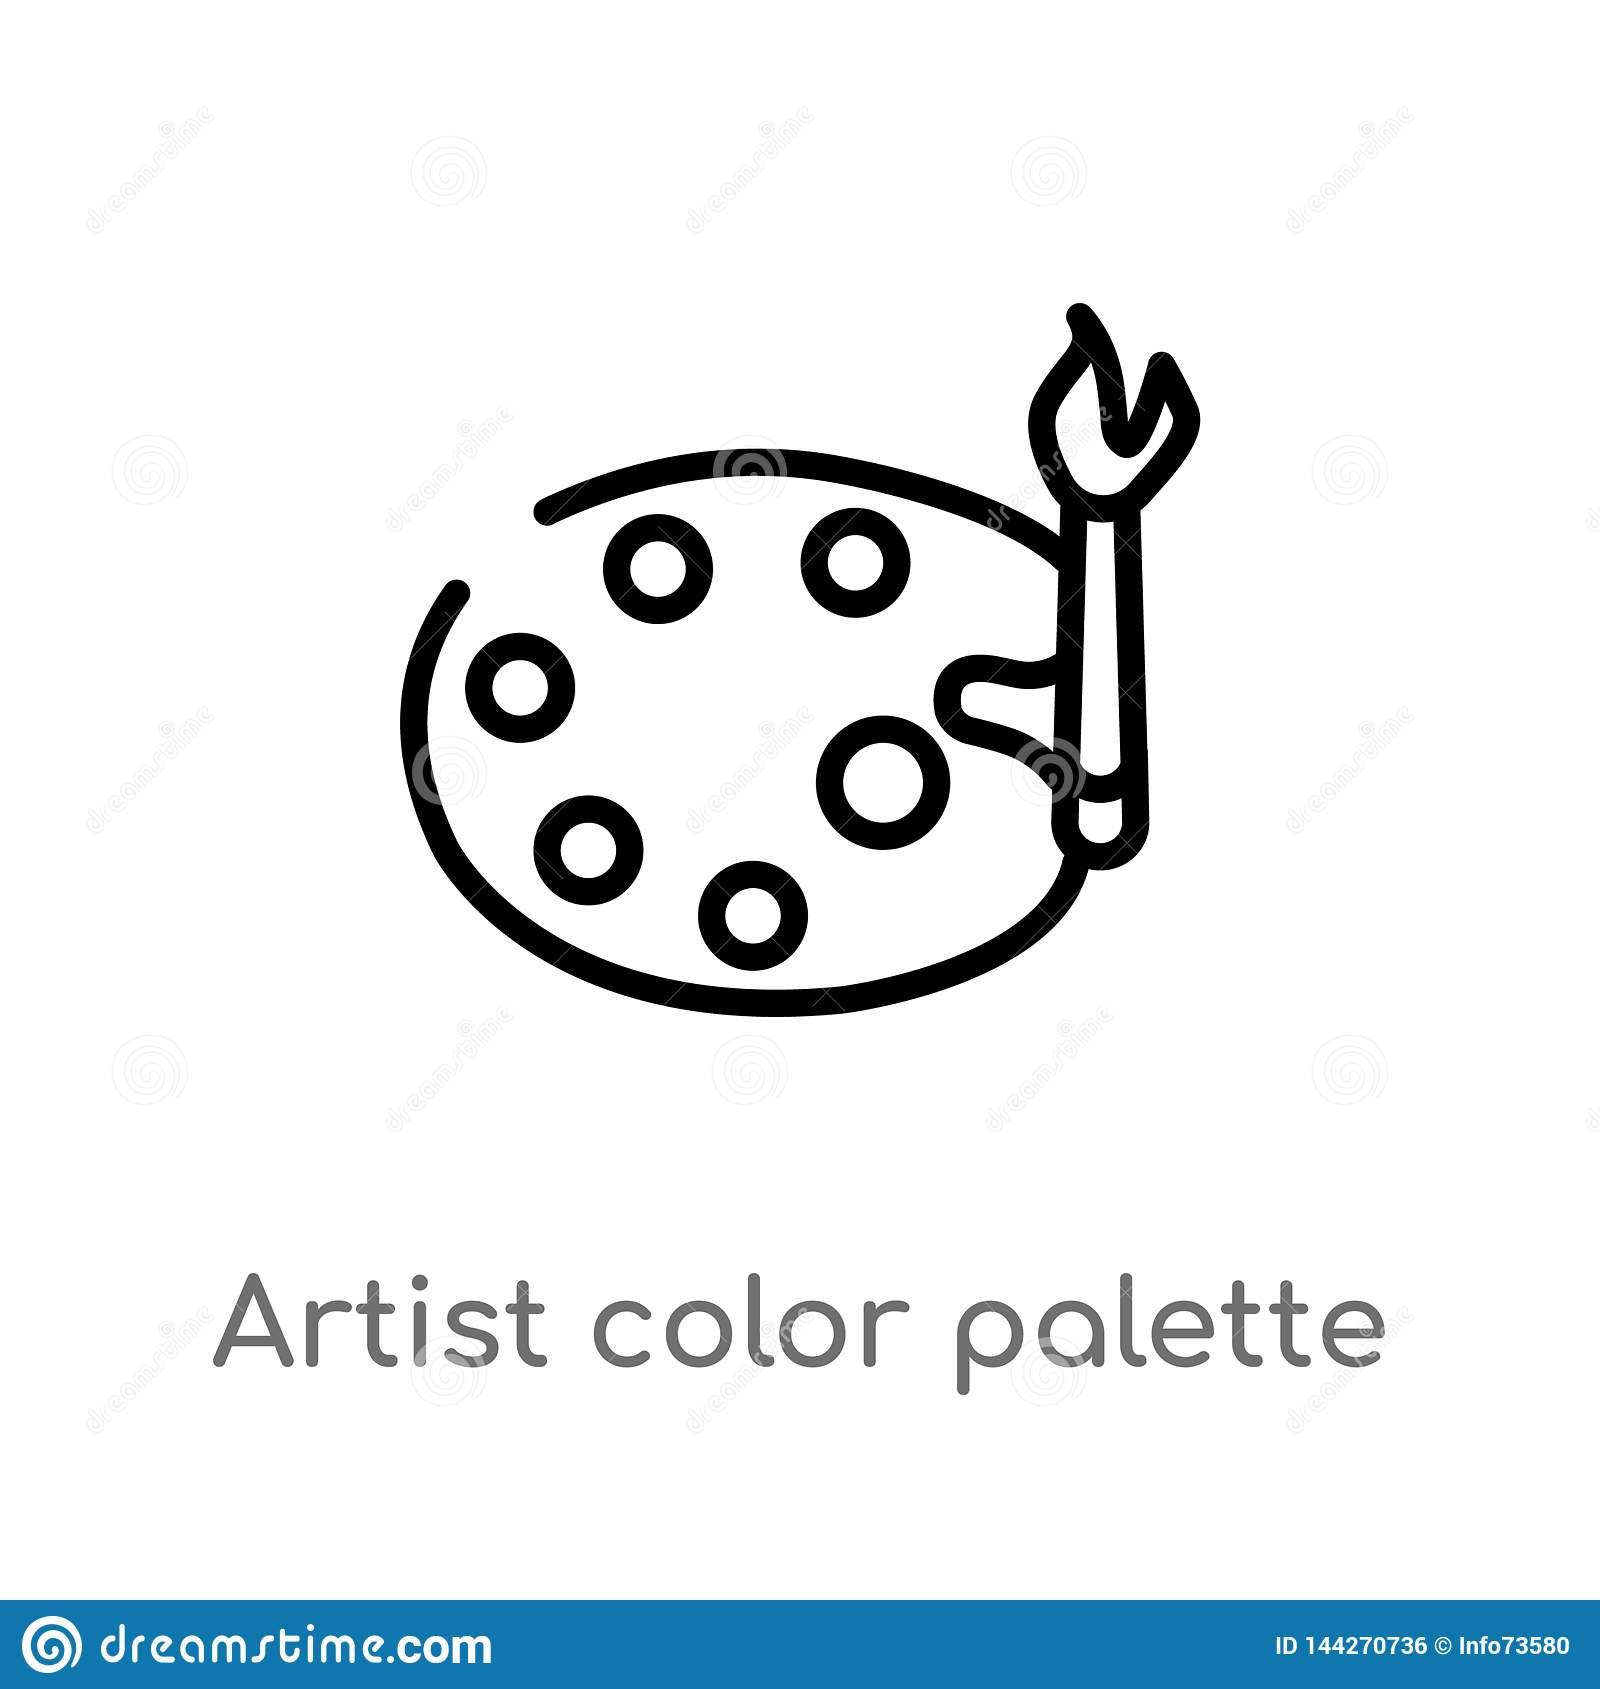 outline artist color palette vector icon. isolated black simple line element illustration from art concept. editable vector stroke